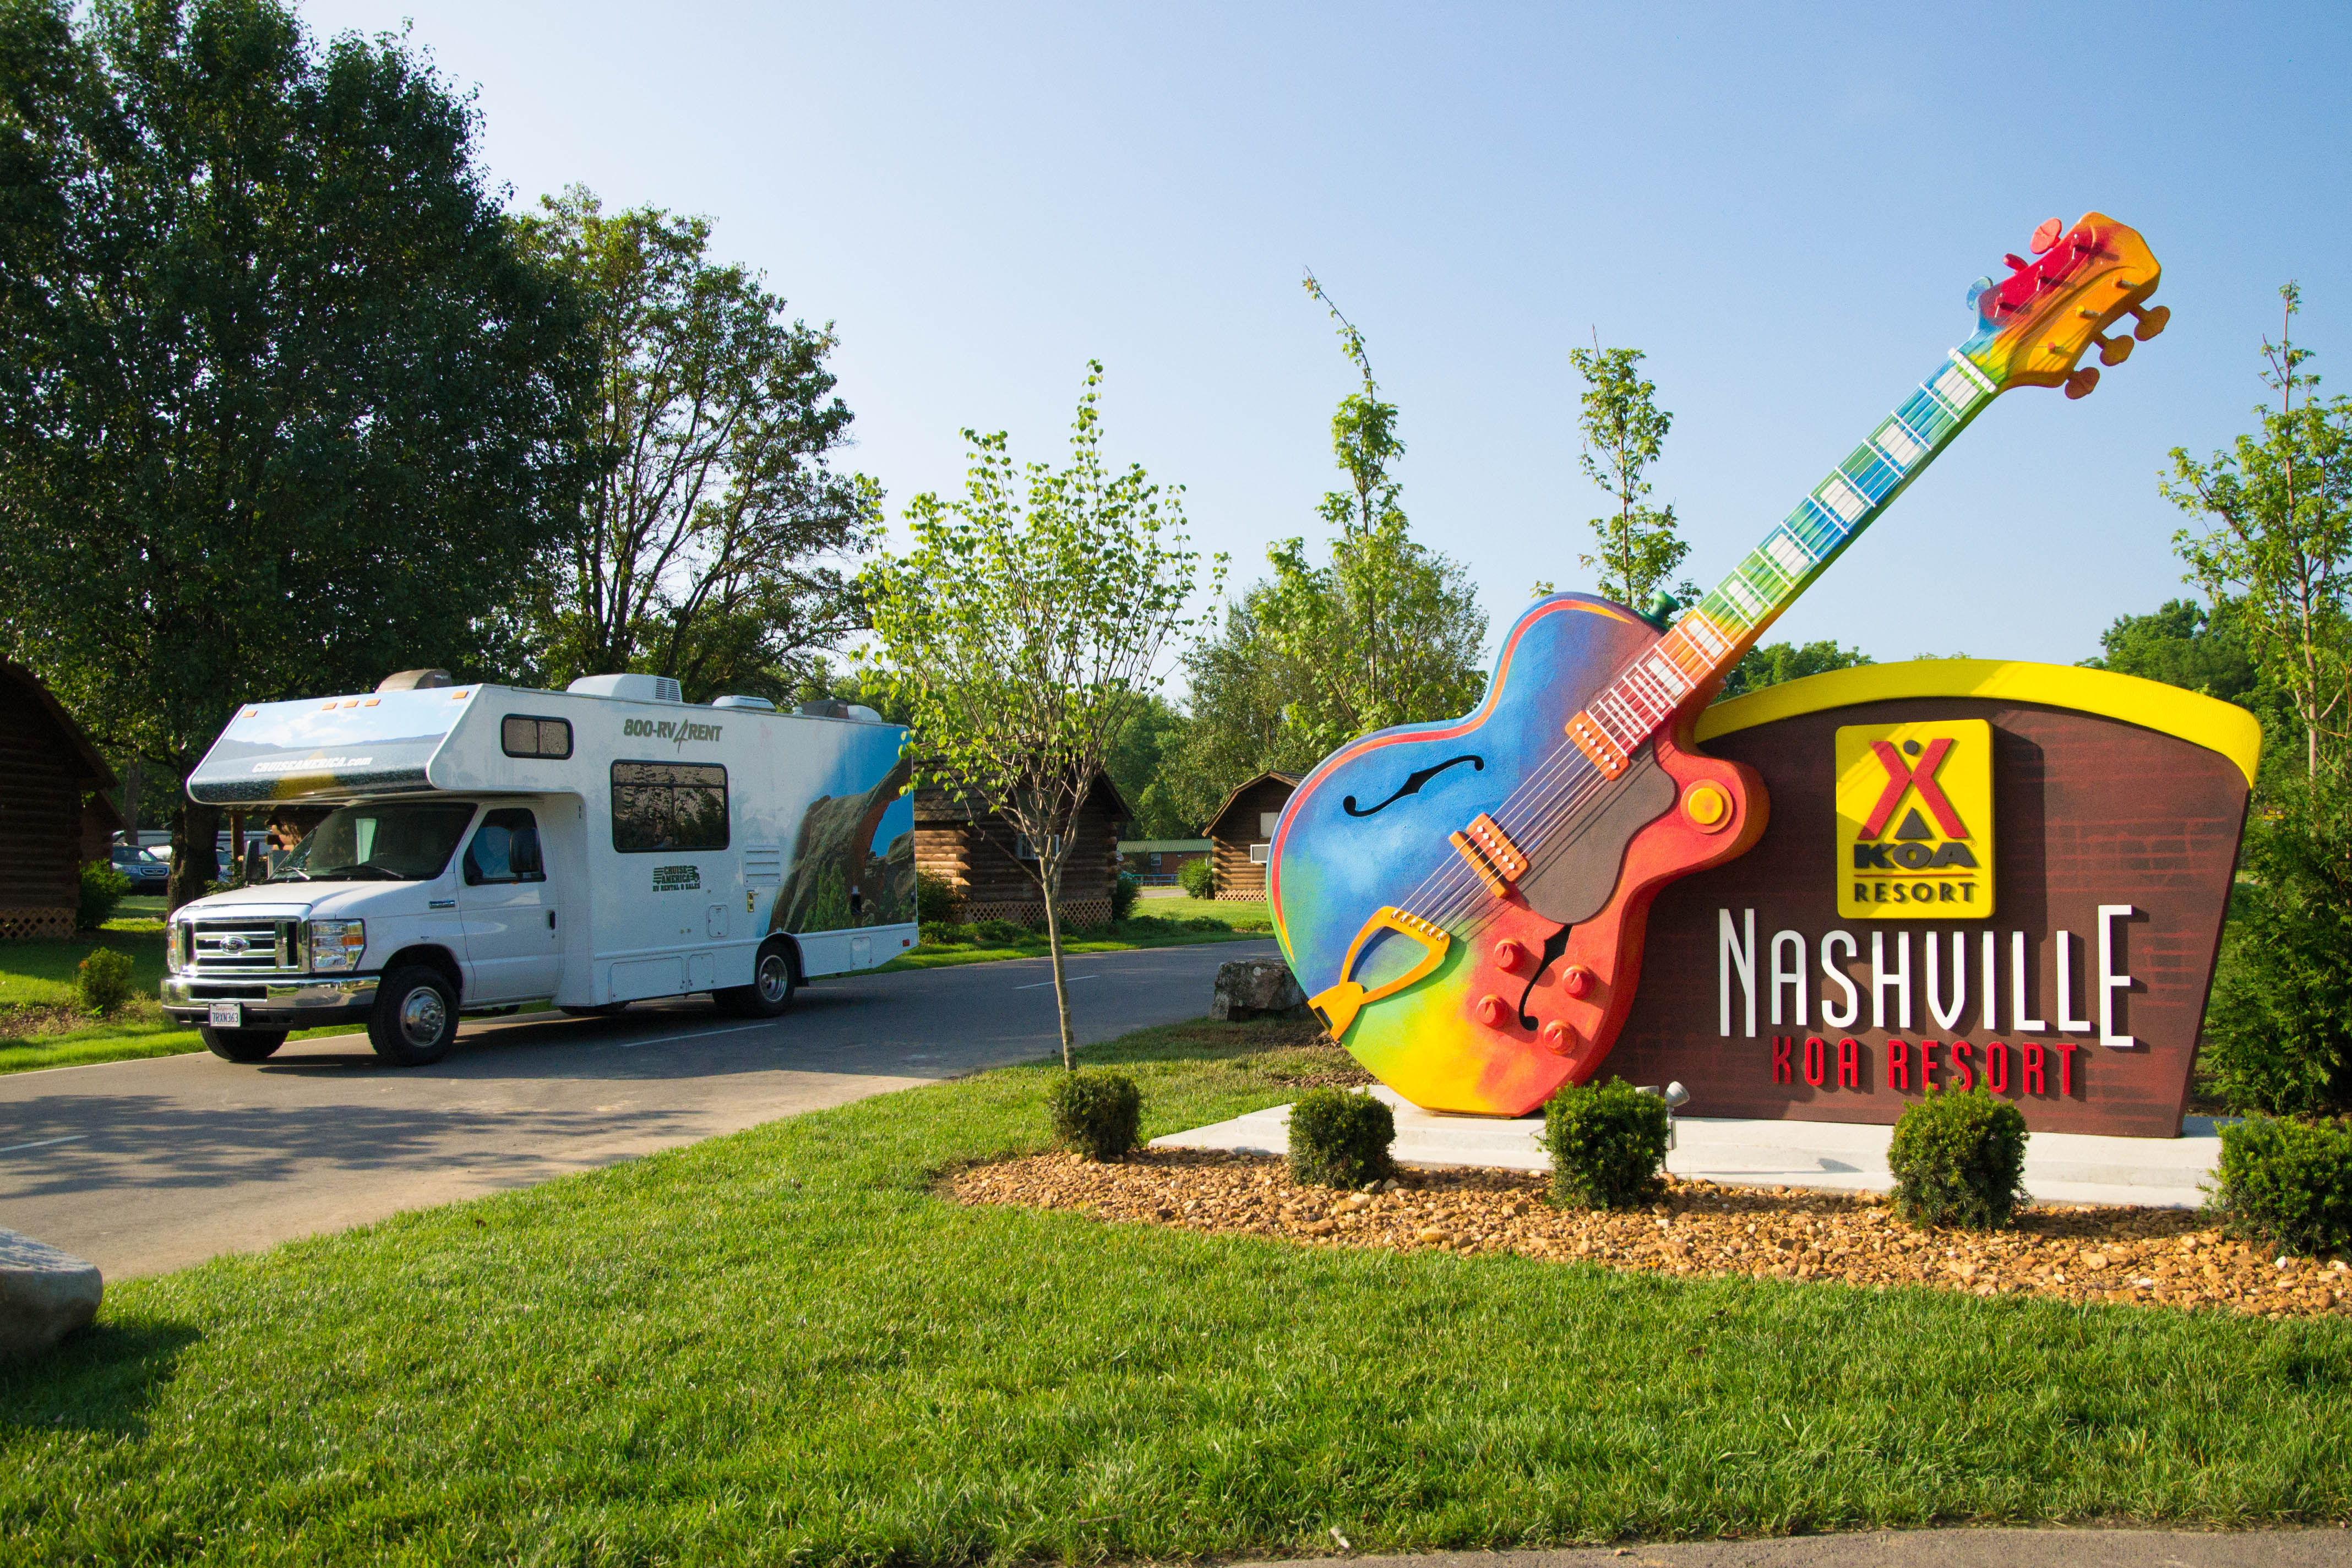 RV friendly campground with deluxe sites